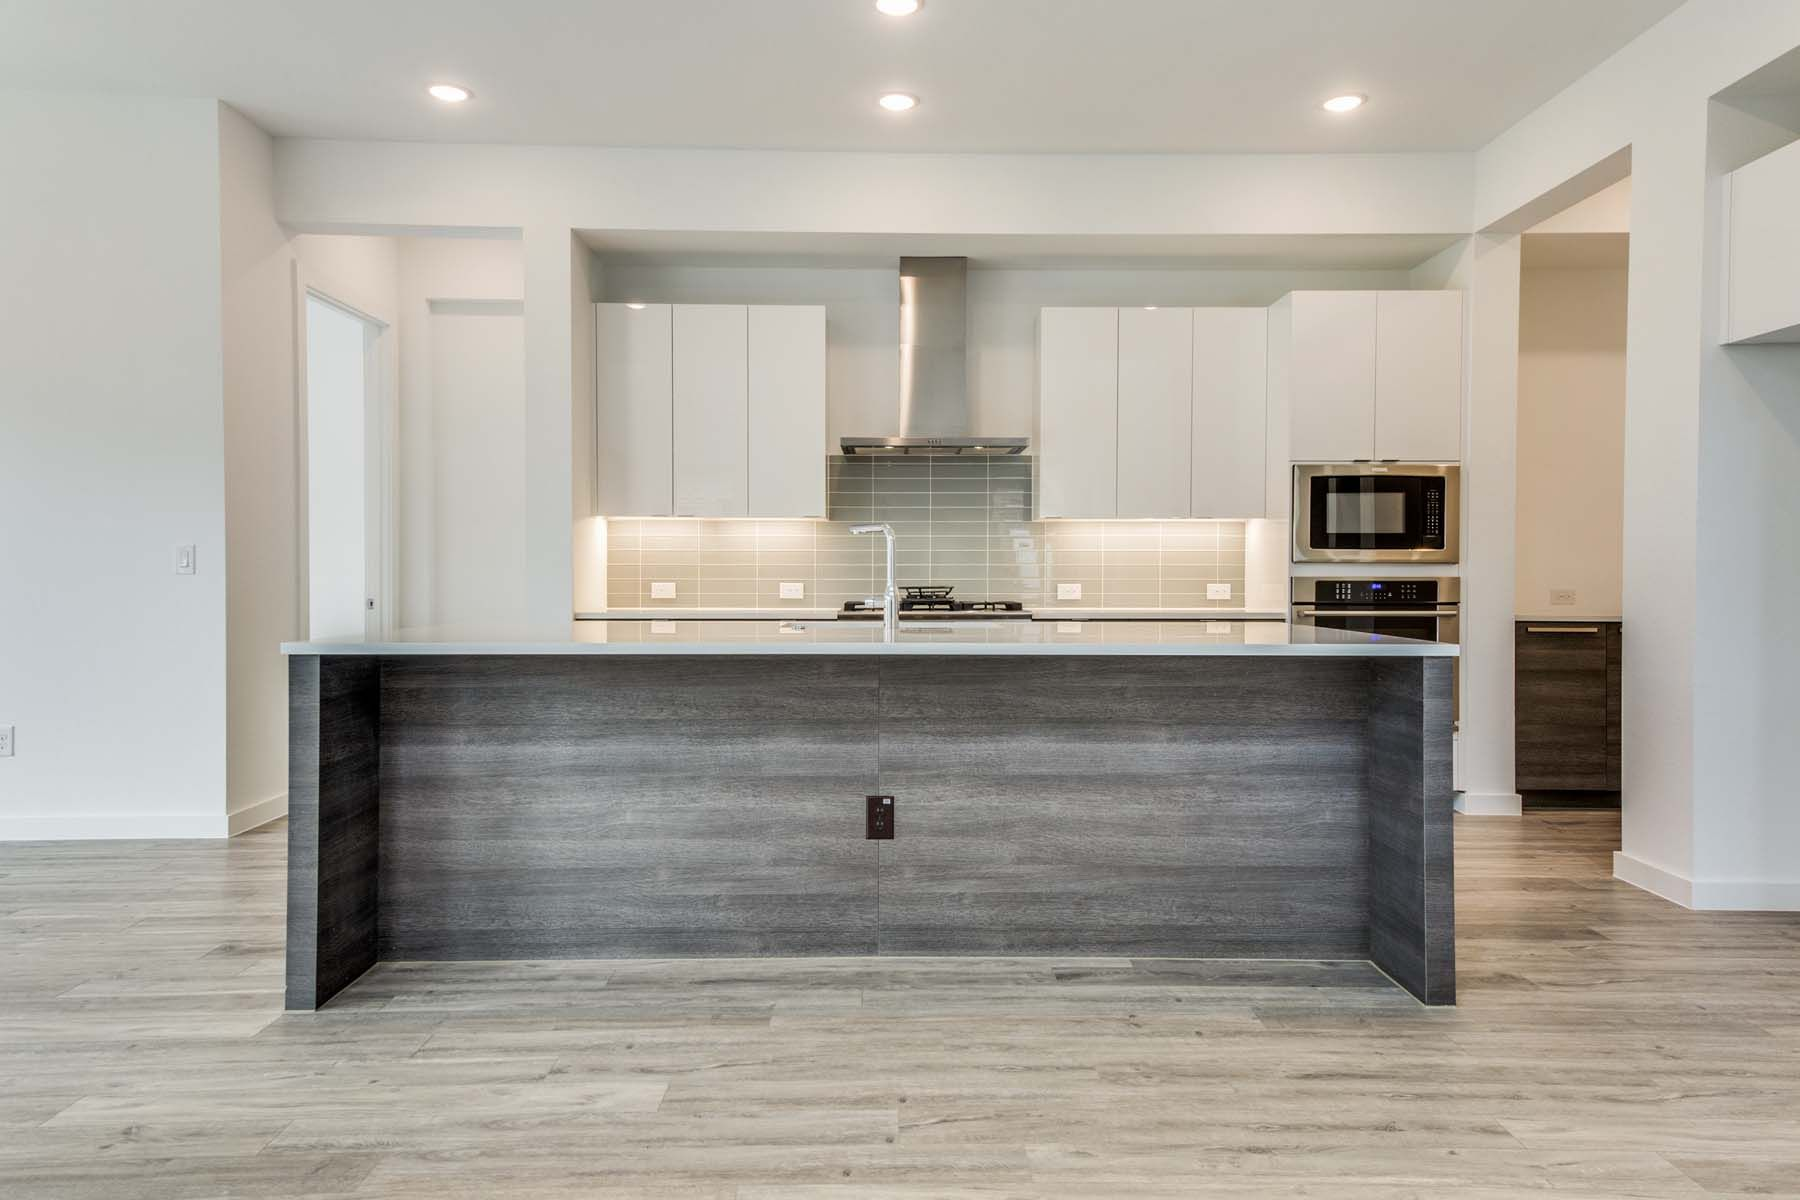 Kitchen featured in the Iona By MainVue Homes in Dallas, TX